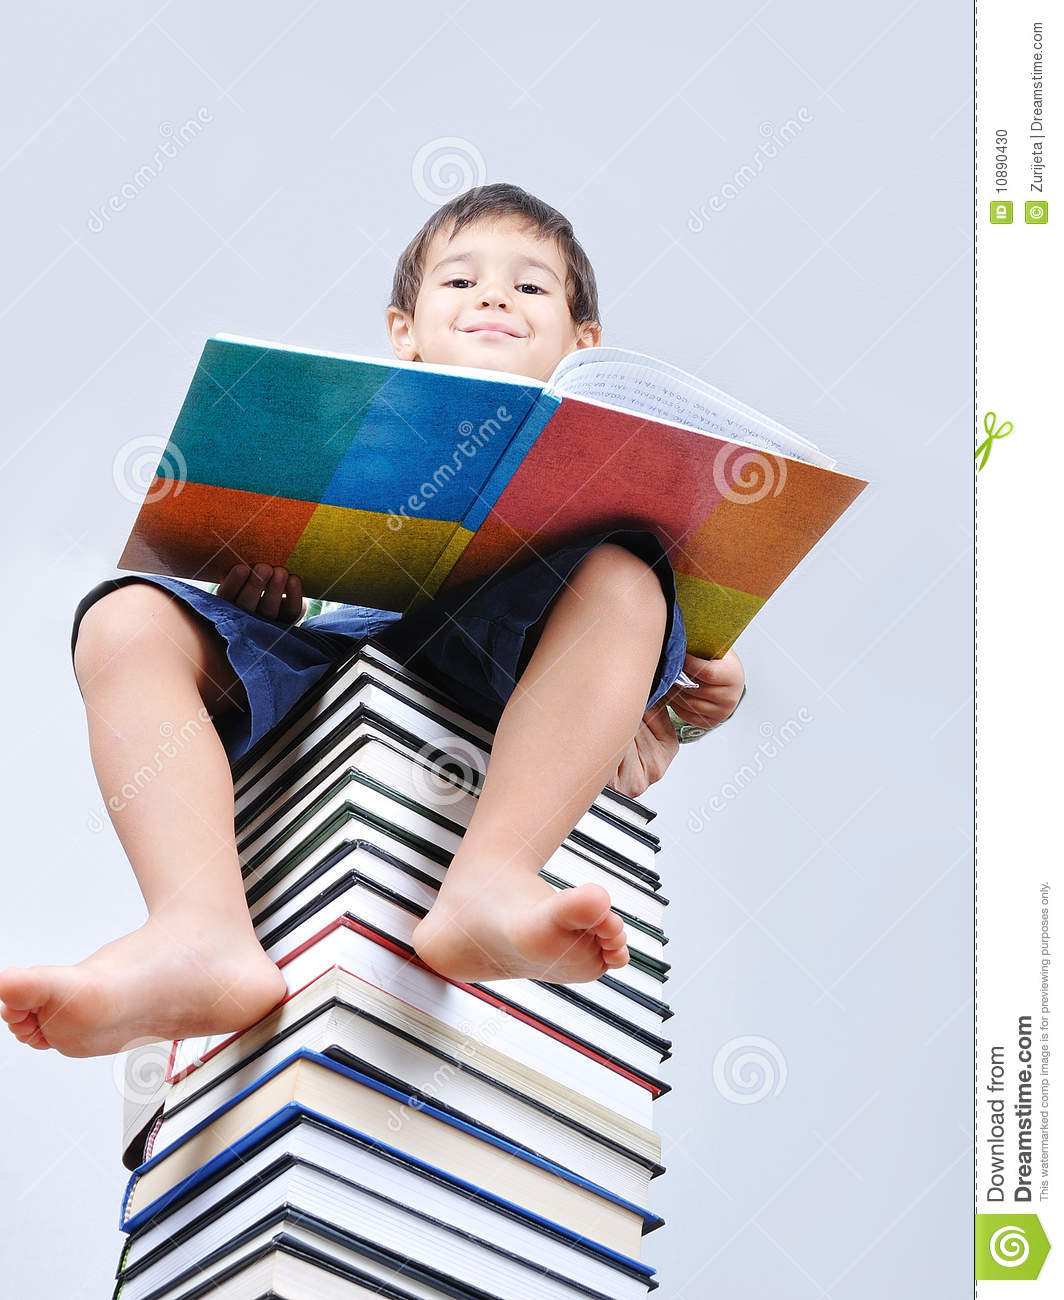 A little cute kid and books